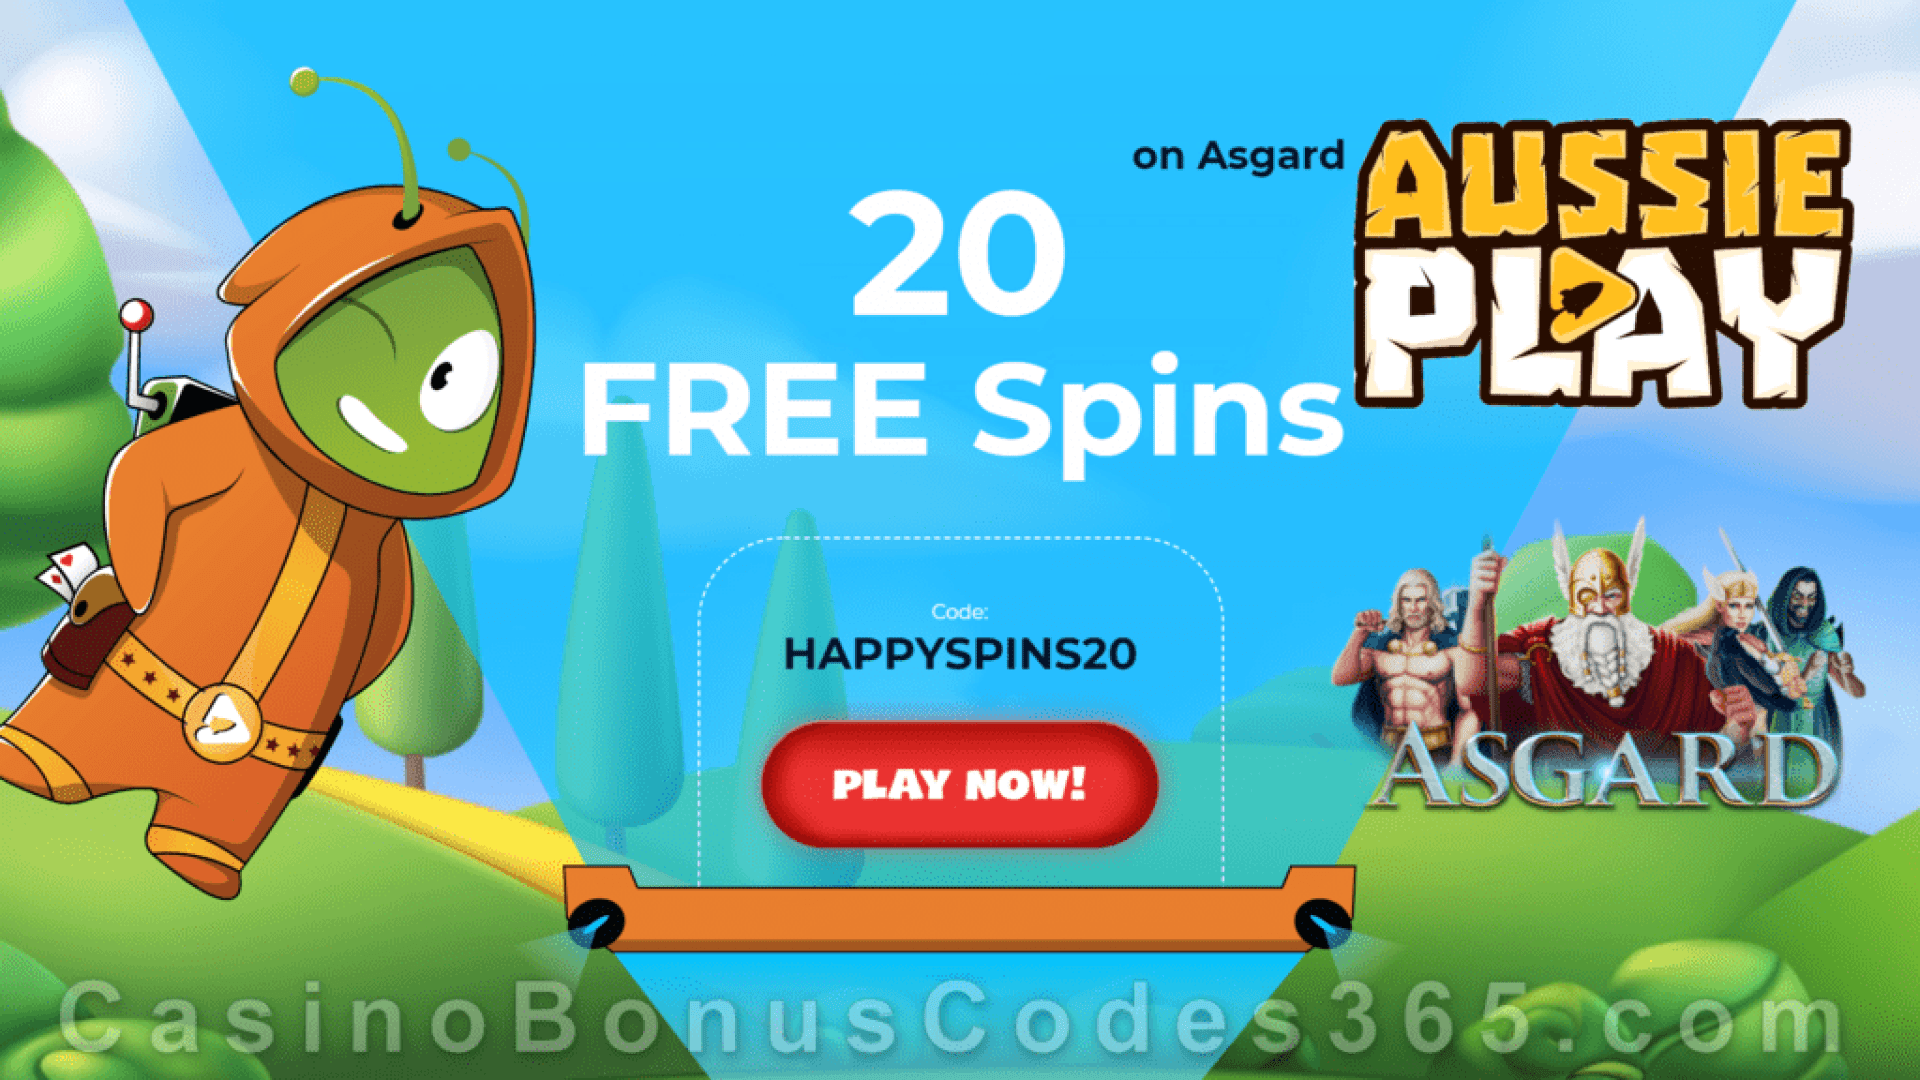 AussiePlay Casino 20 FREE Spins on RTG Asgard Sign Up Offer